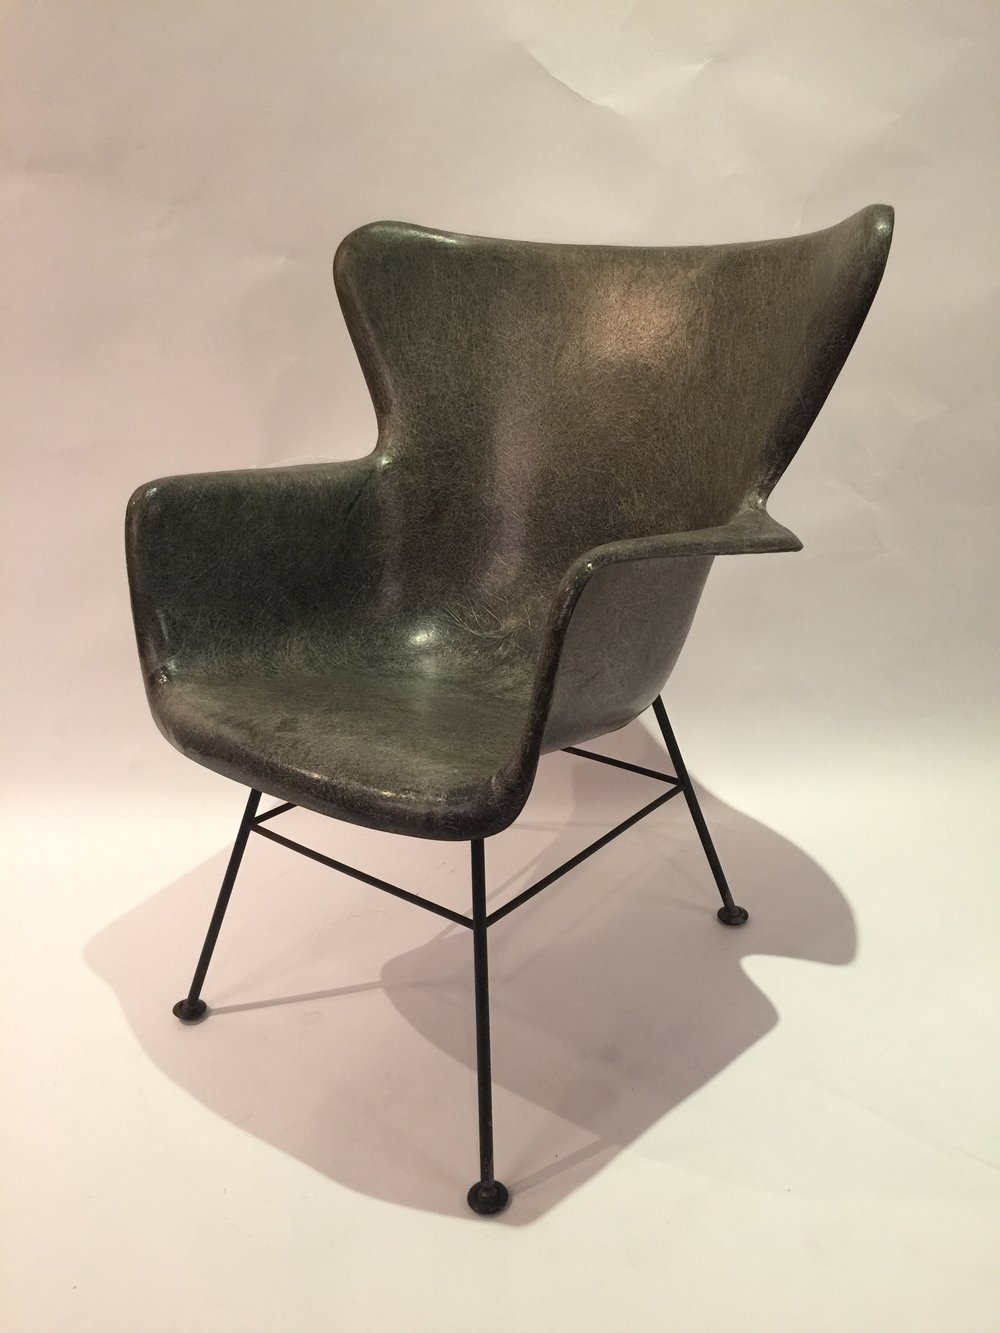 L. Peabody for Selig Fiberglass chair